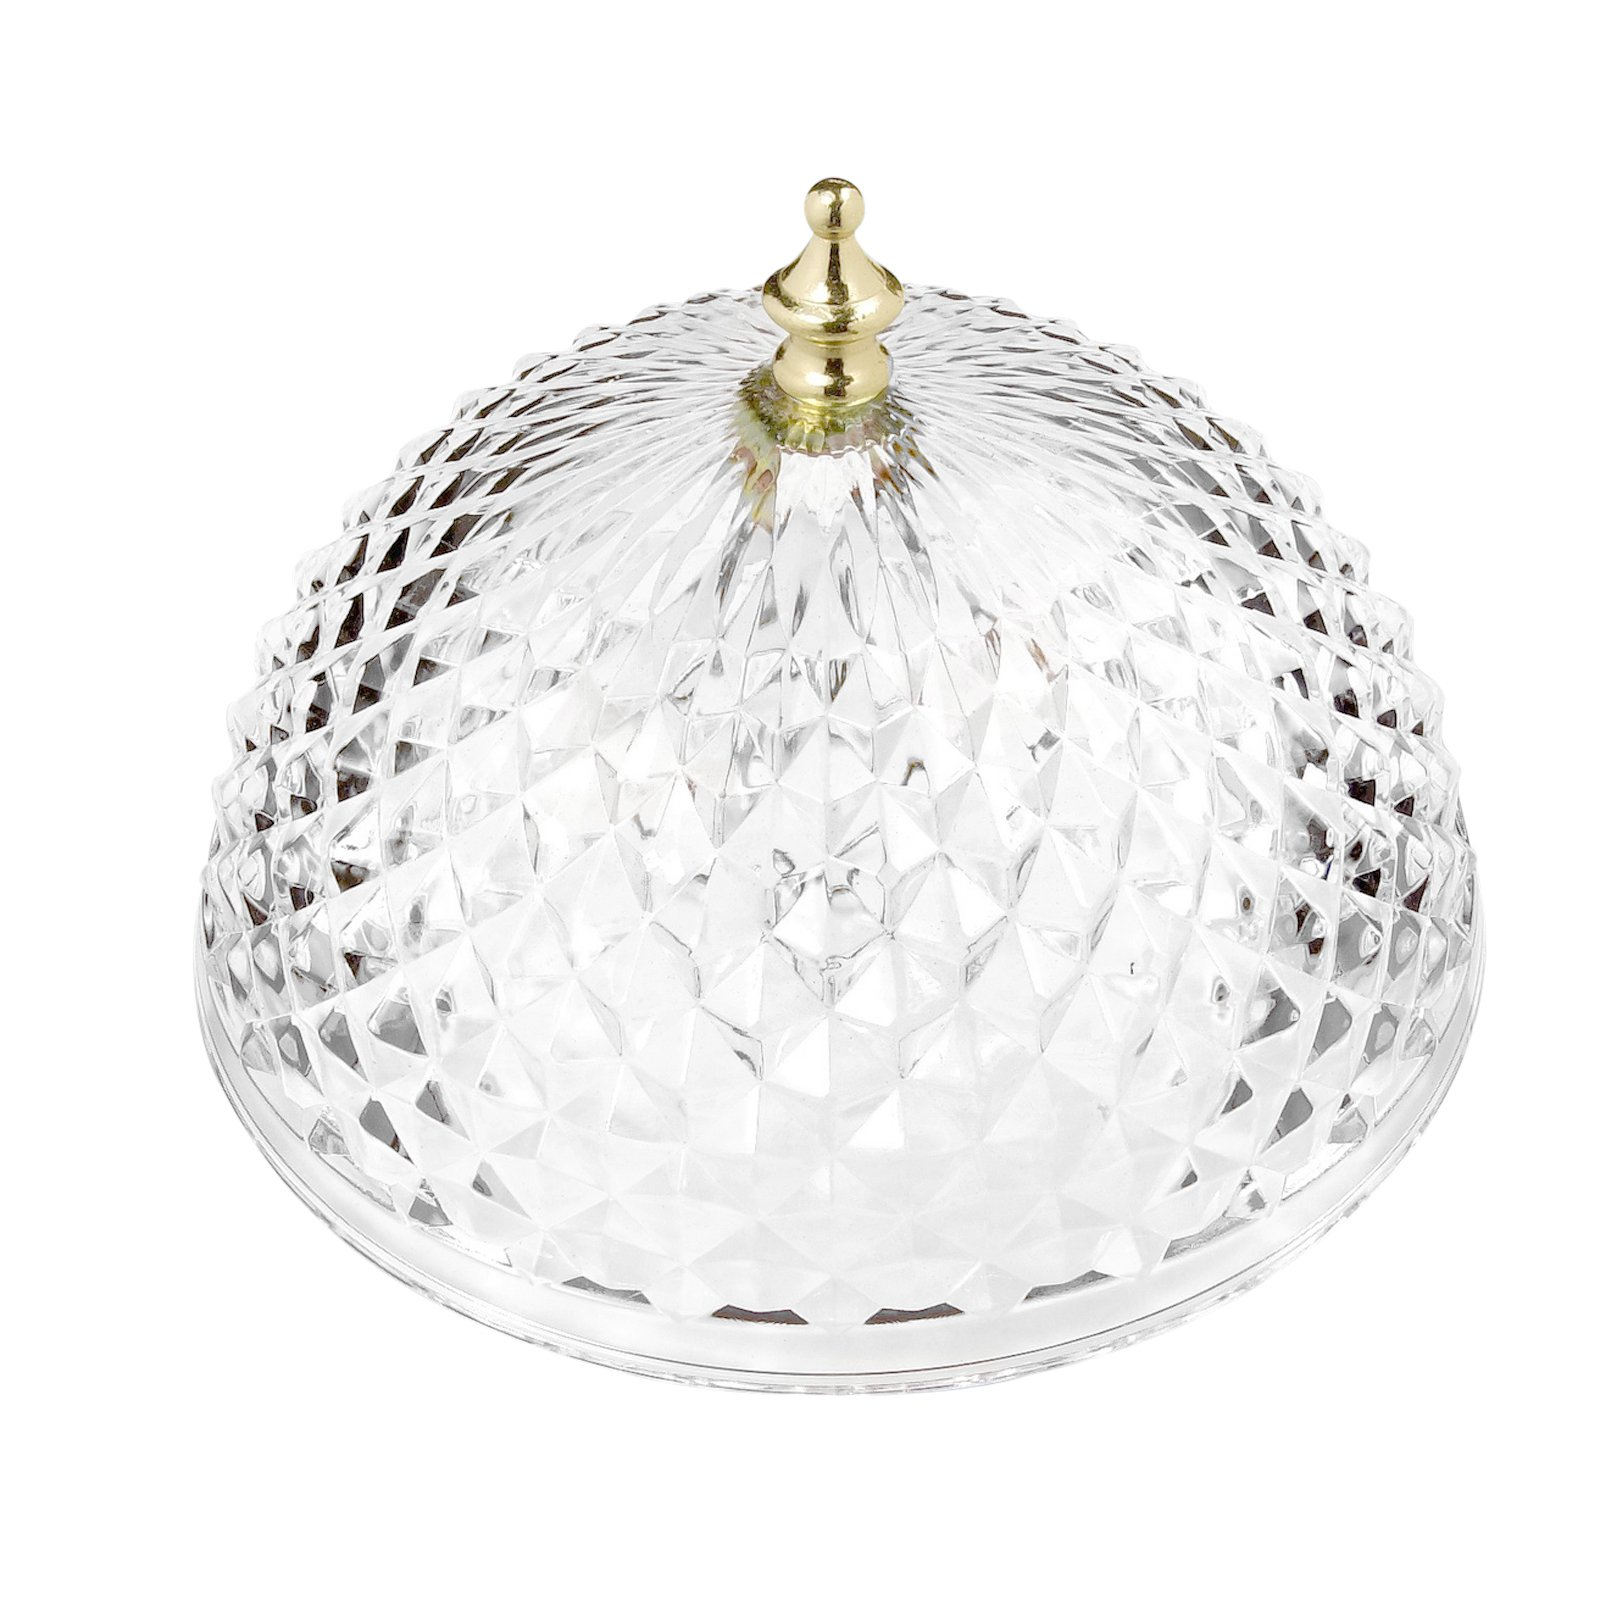 Evelots Antique Clip On Shade, Vintage Diamond Cut Acrylic Dome Light Bulb Fixture by Evelots (Image #4)